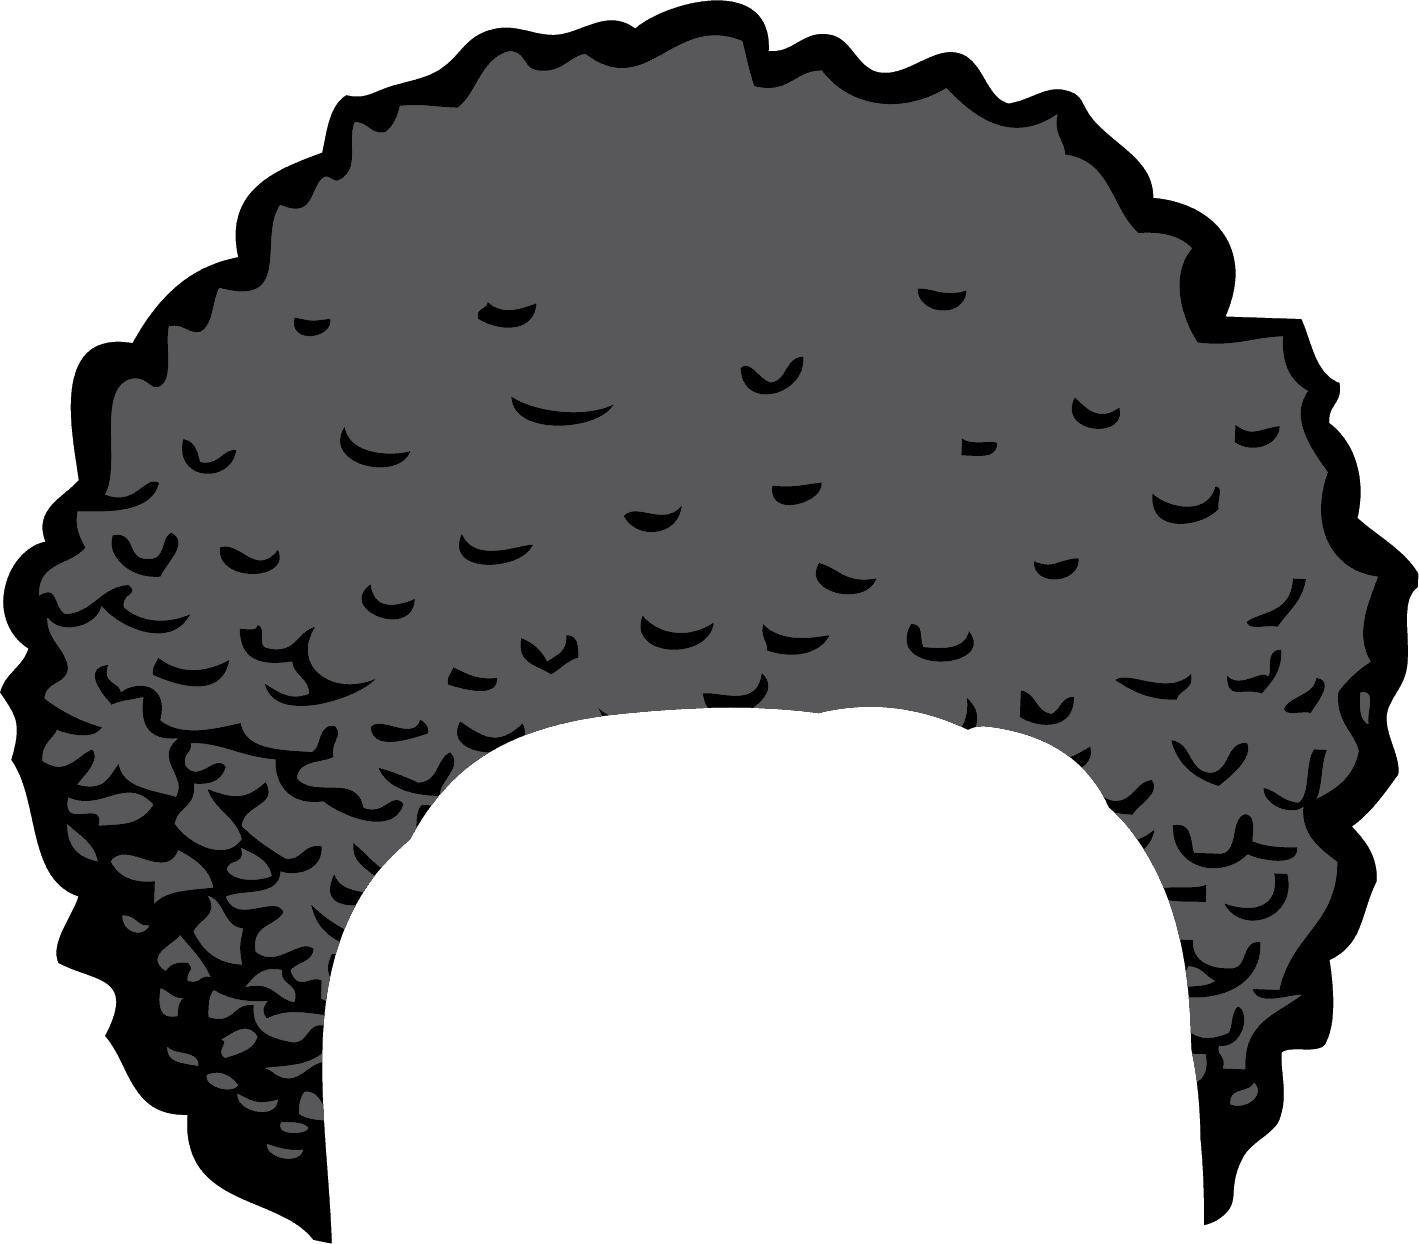 Hair clipart afro. Pic transparentpng download free